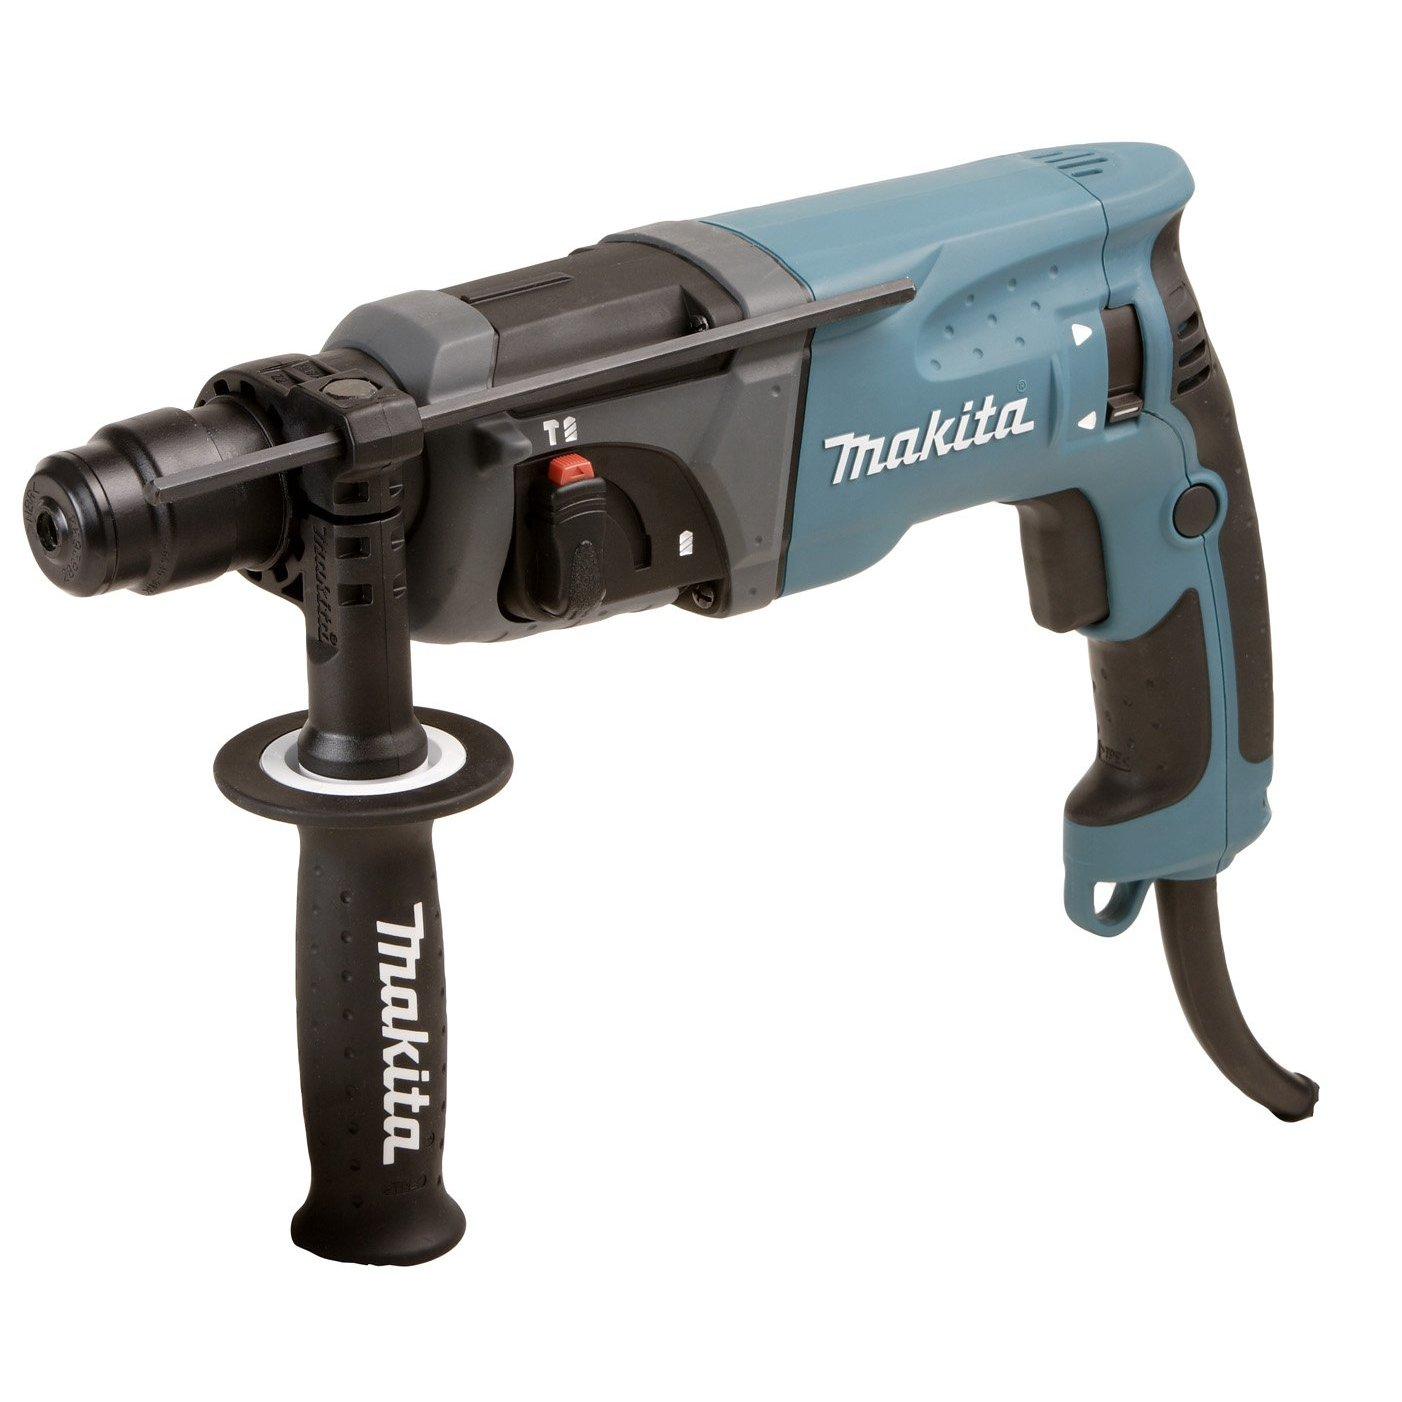 Makita HR 2460 SDS-Plus-Bohrhammer